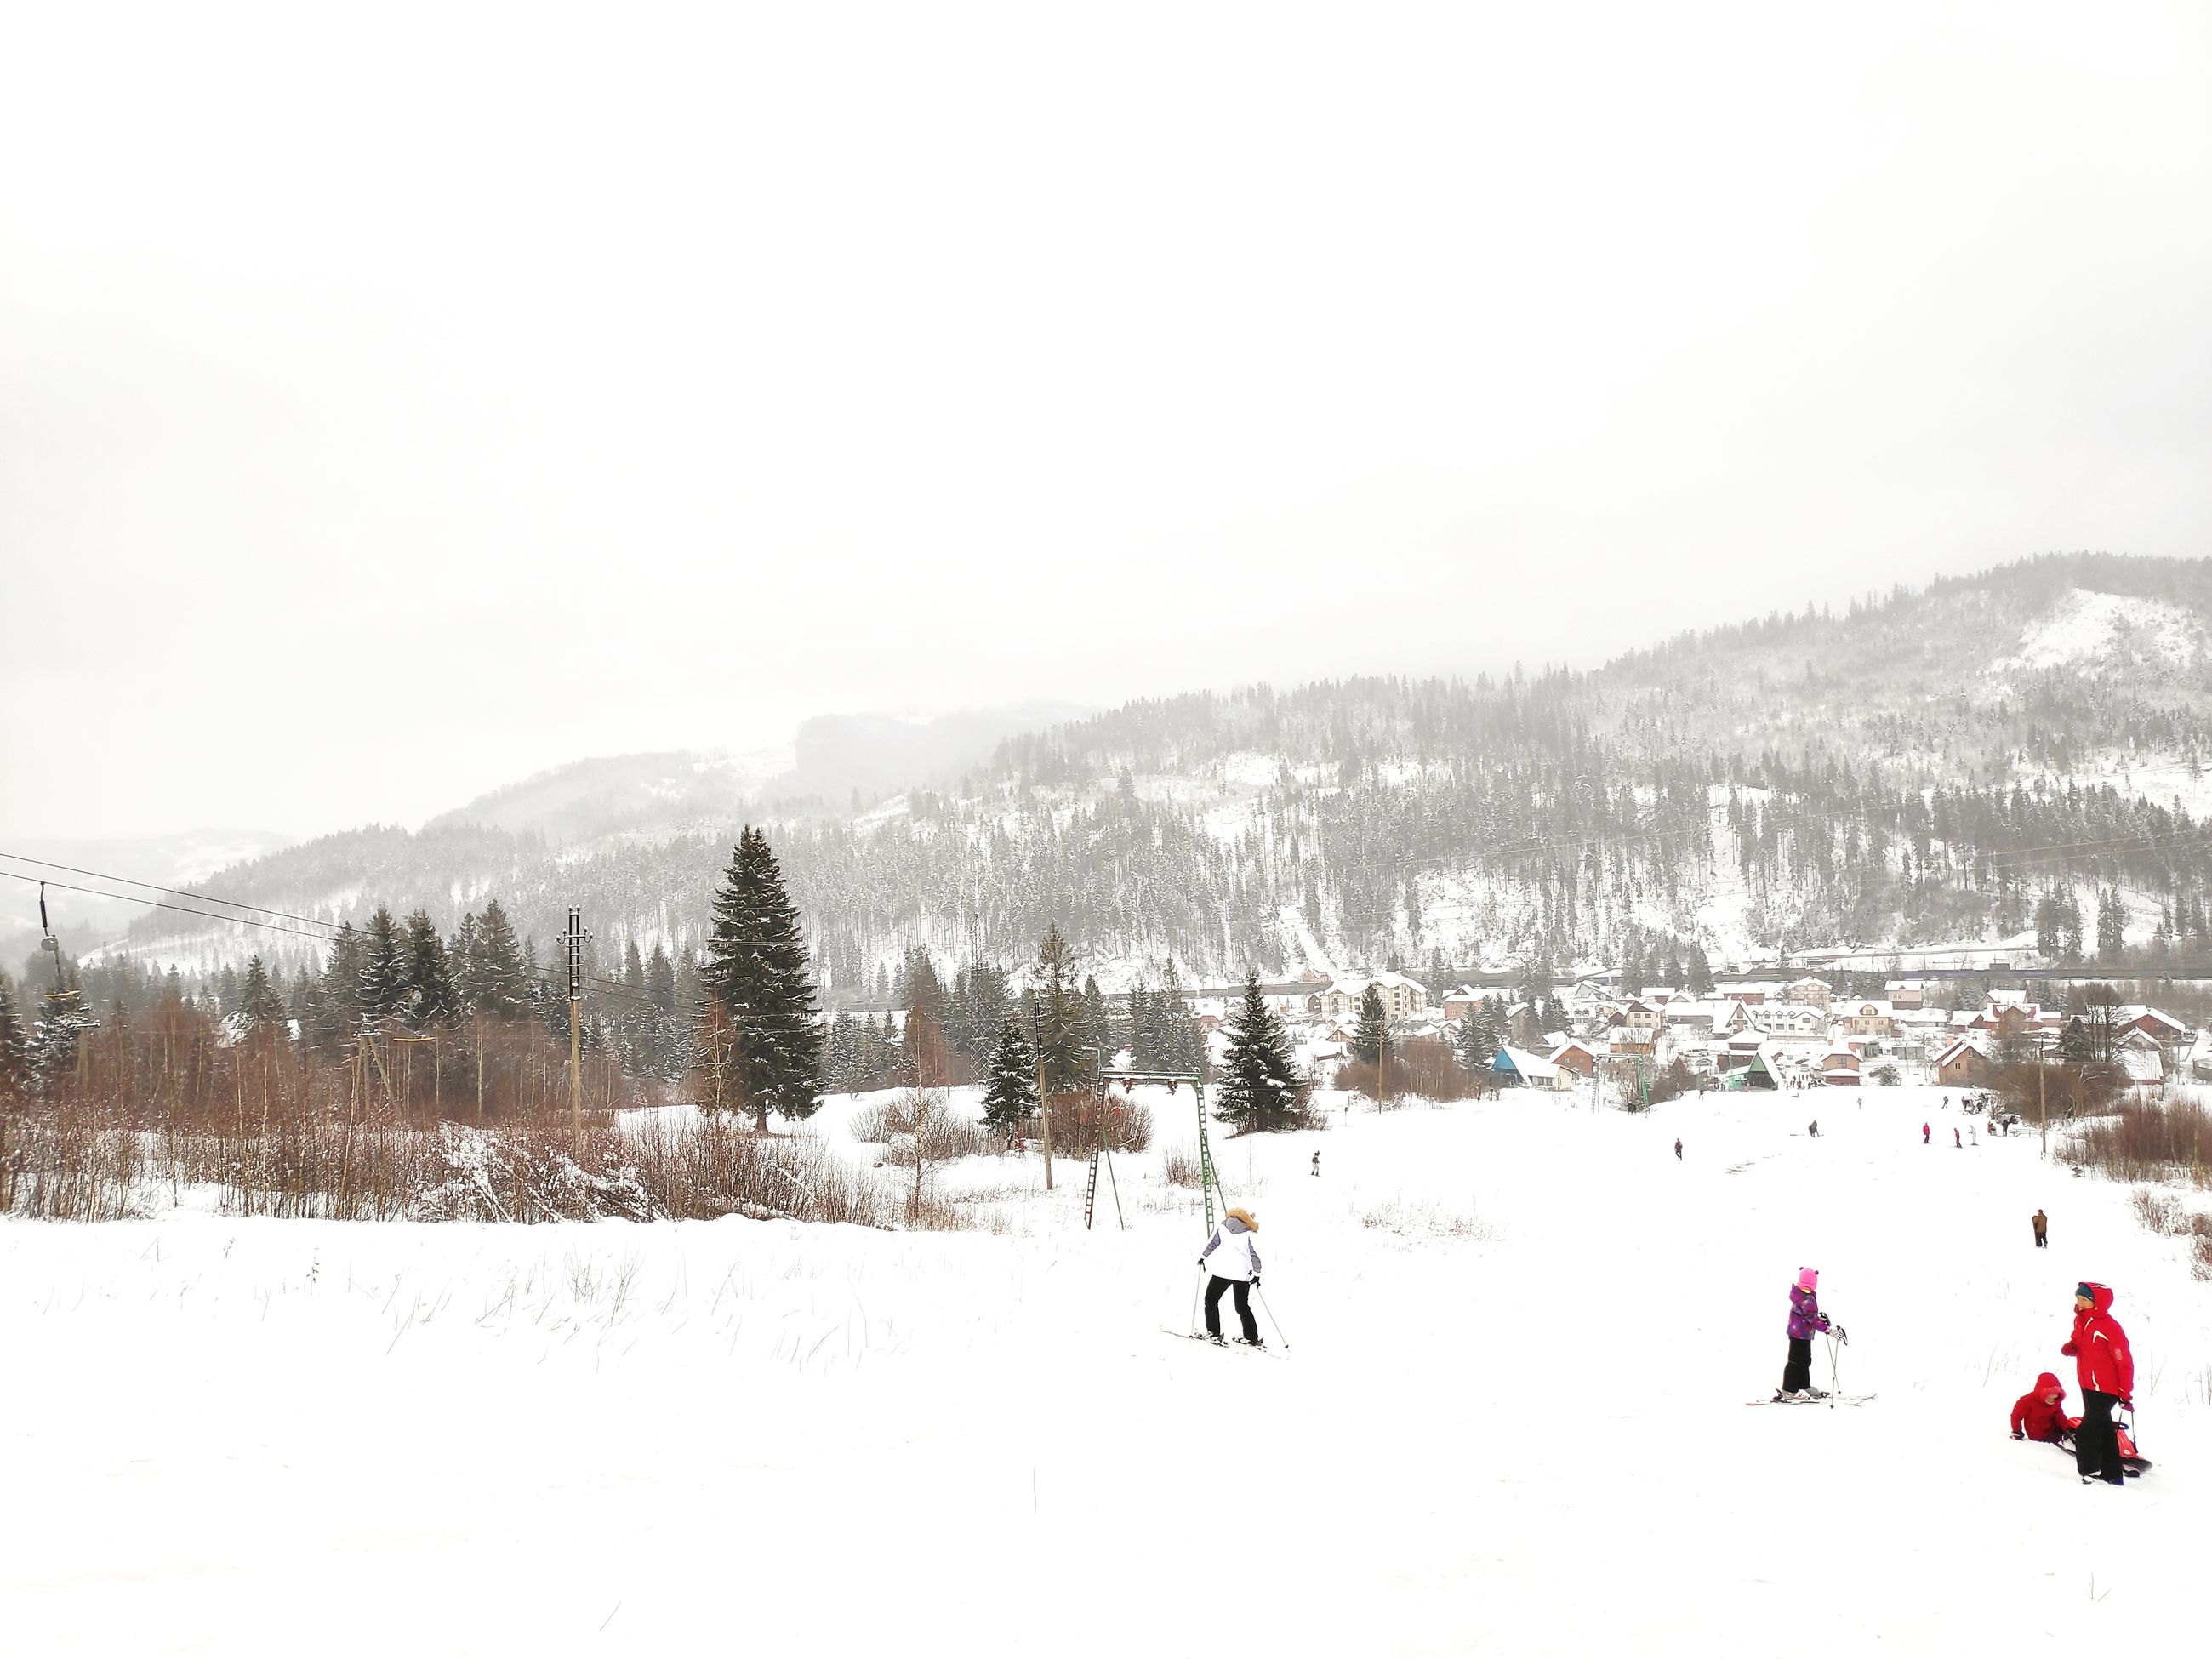 snow, winter, cold temperature, sky, mountain, beauty in nature, nature, scenics - nature, real people, tree, group of people, field, land, winter sport, day, copy space, sport, covering, skiing, mountain range, outdoors, snowcapped mountain, warm clothing